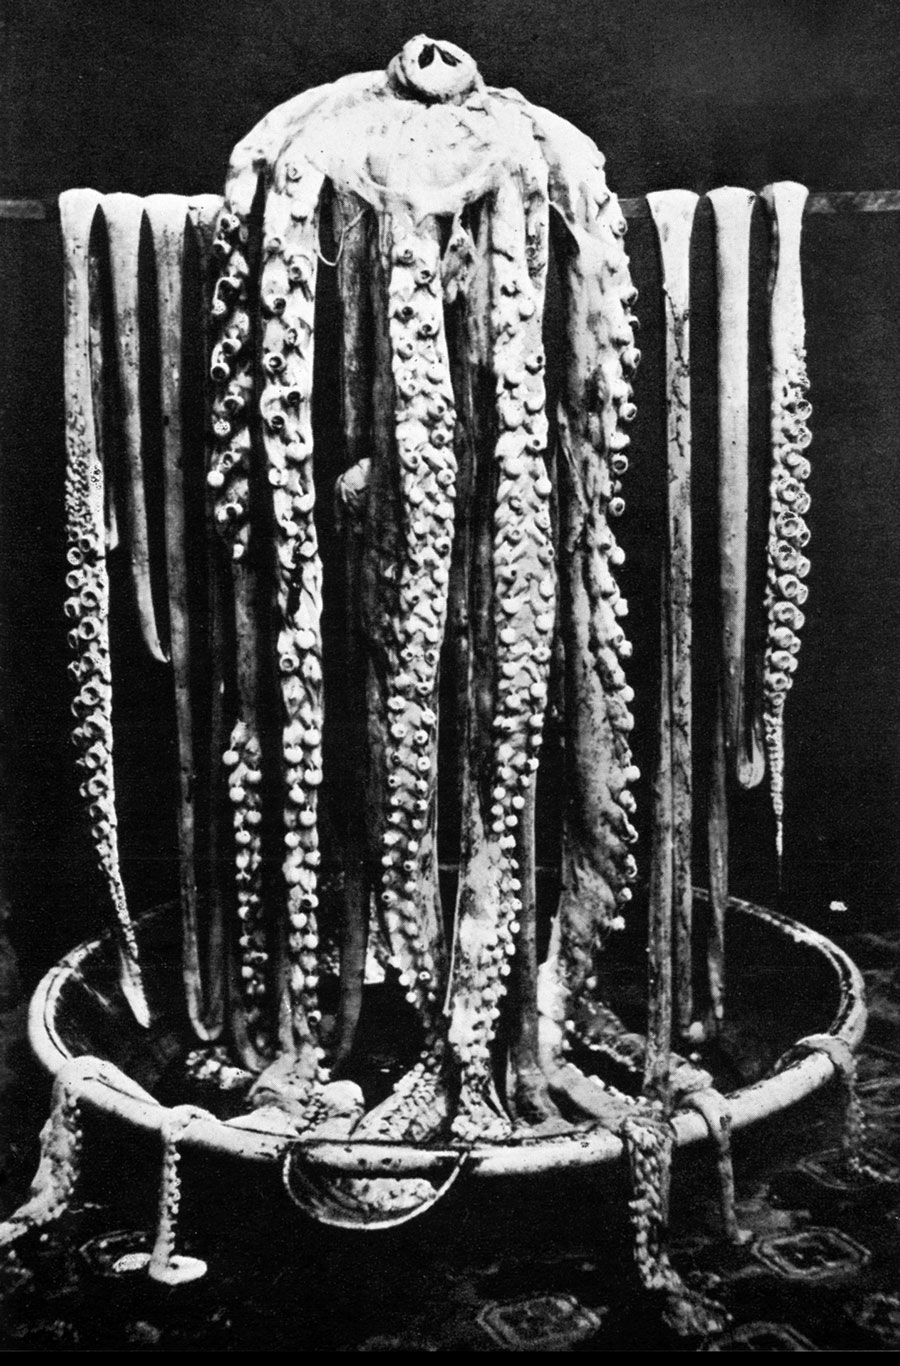 Giant Squid Harvey Photograph